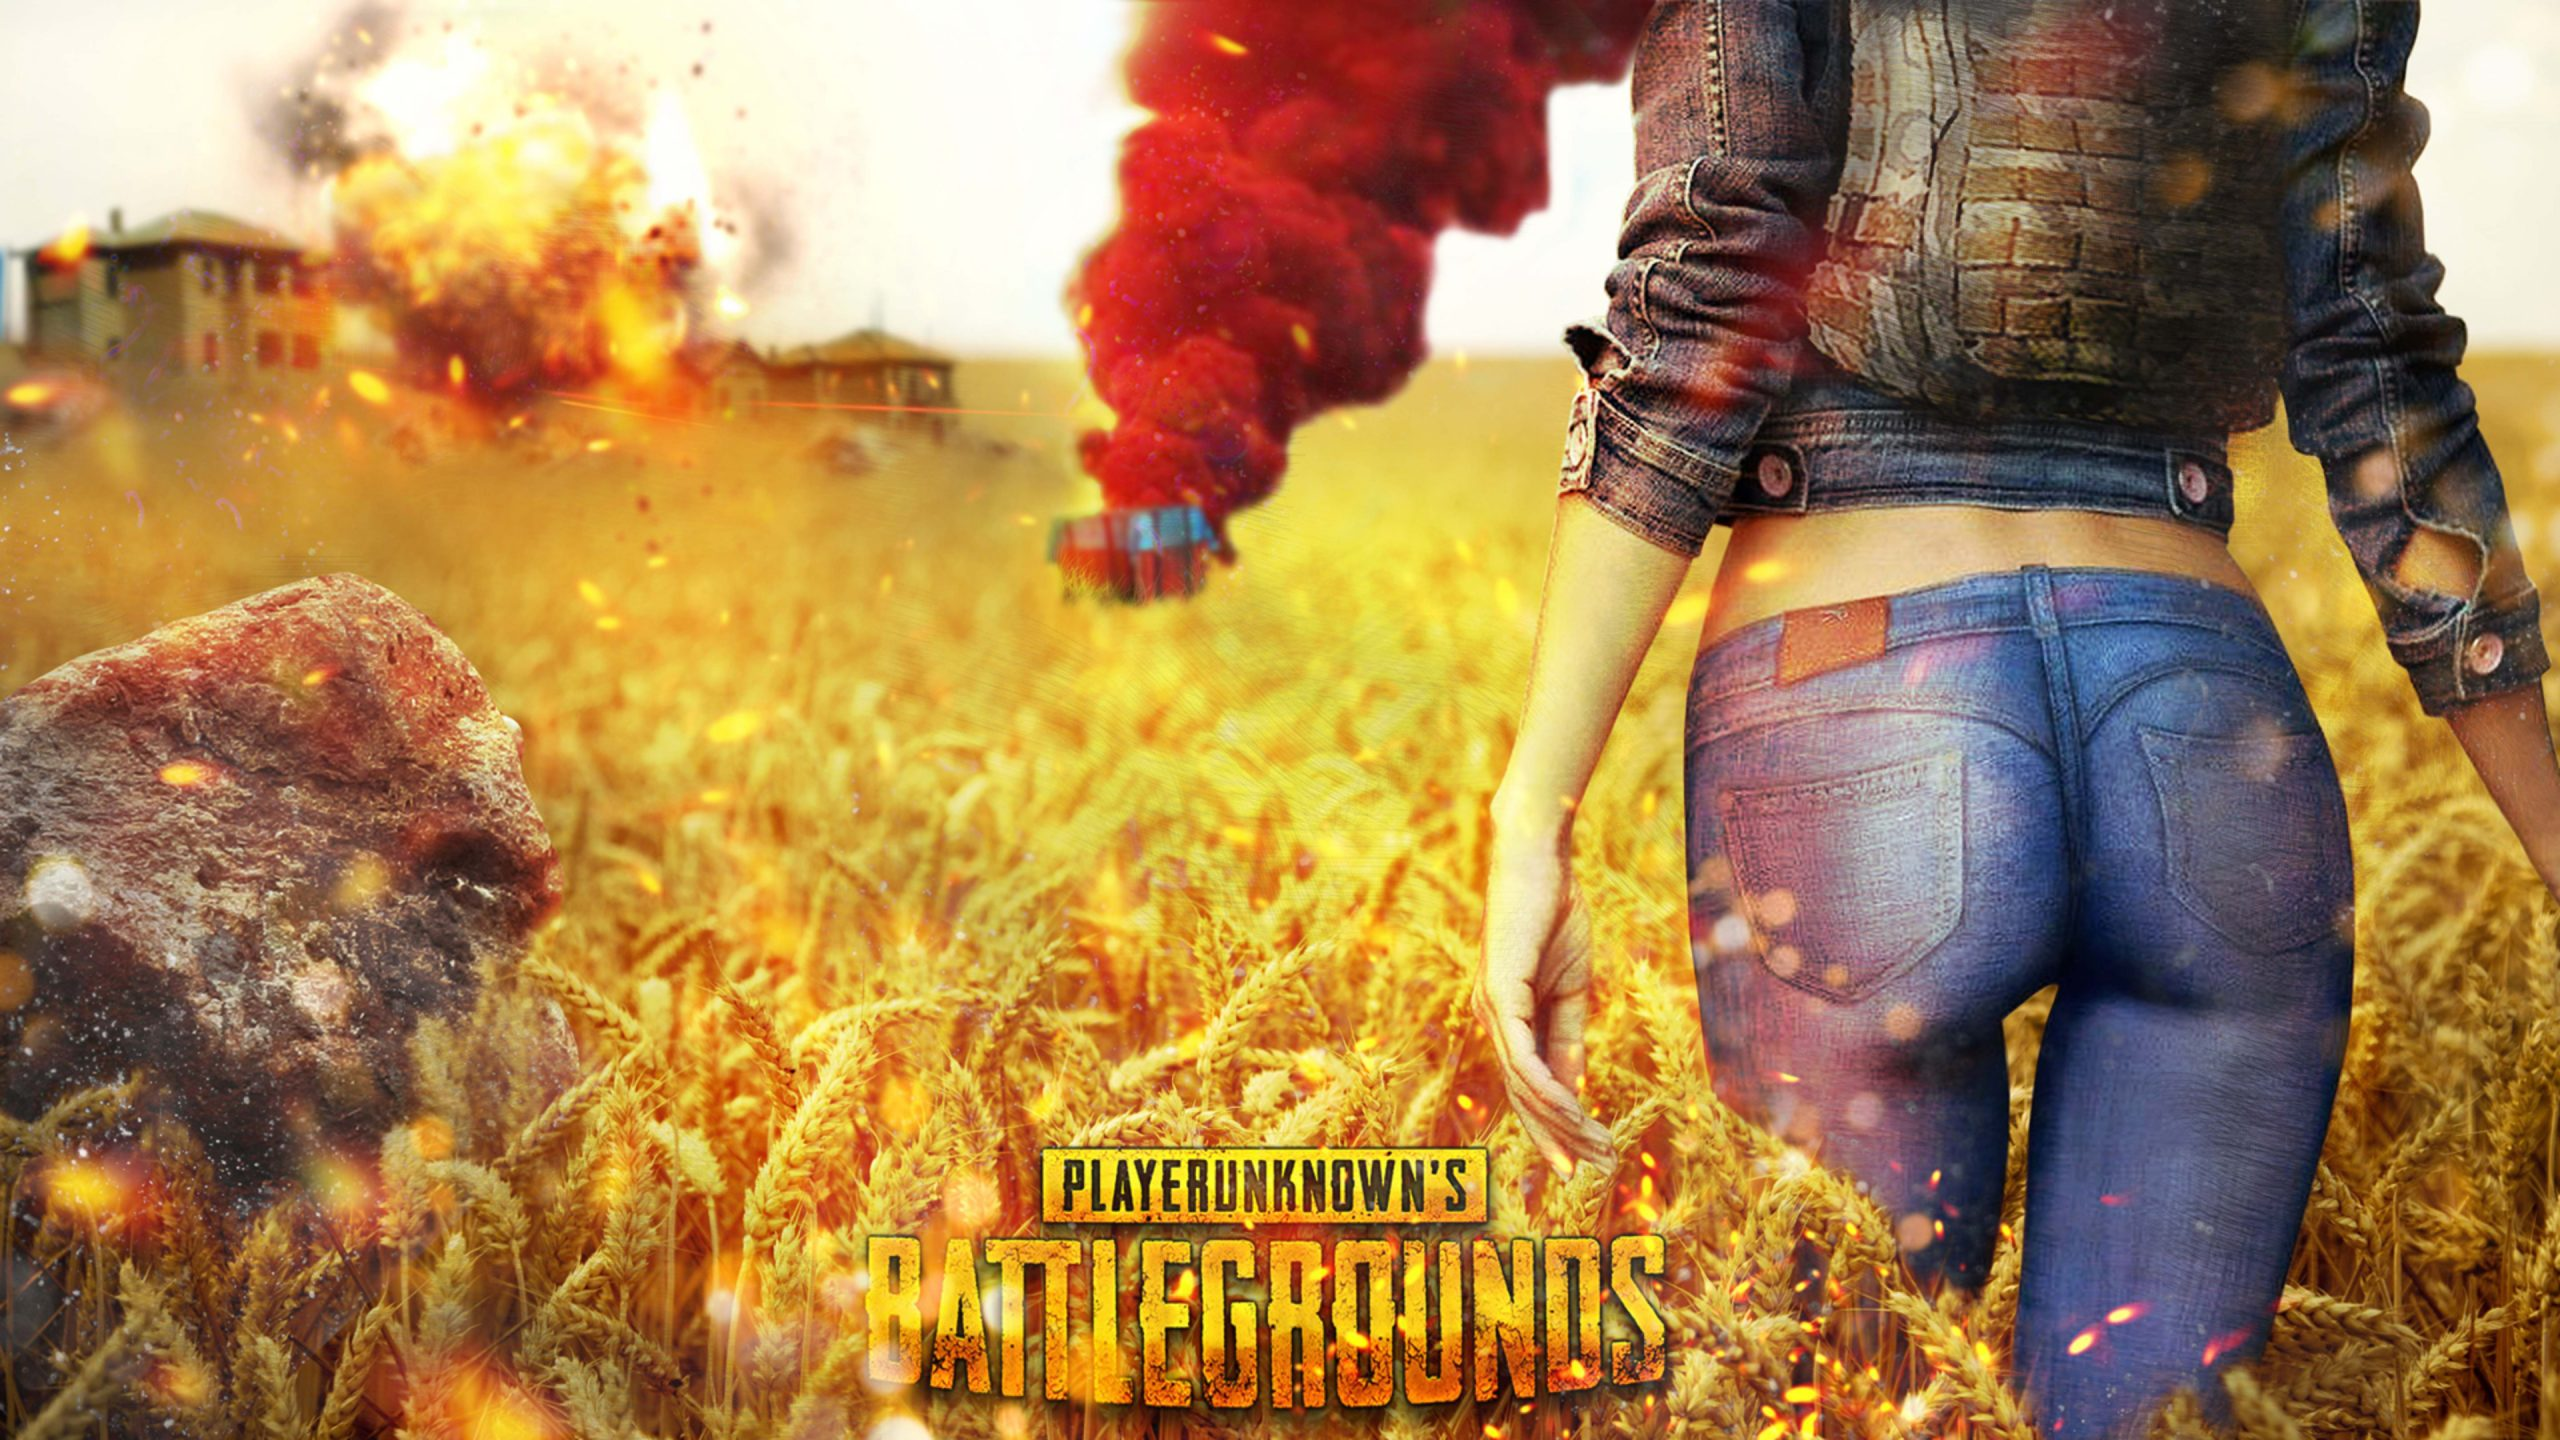 Pubg Wallpaper 1440 Playerunknowns Battlegrounds Pubg Cover 4k Wallpaper